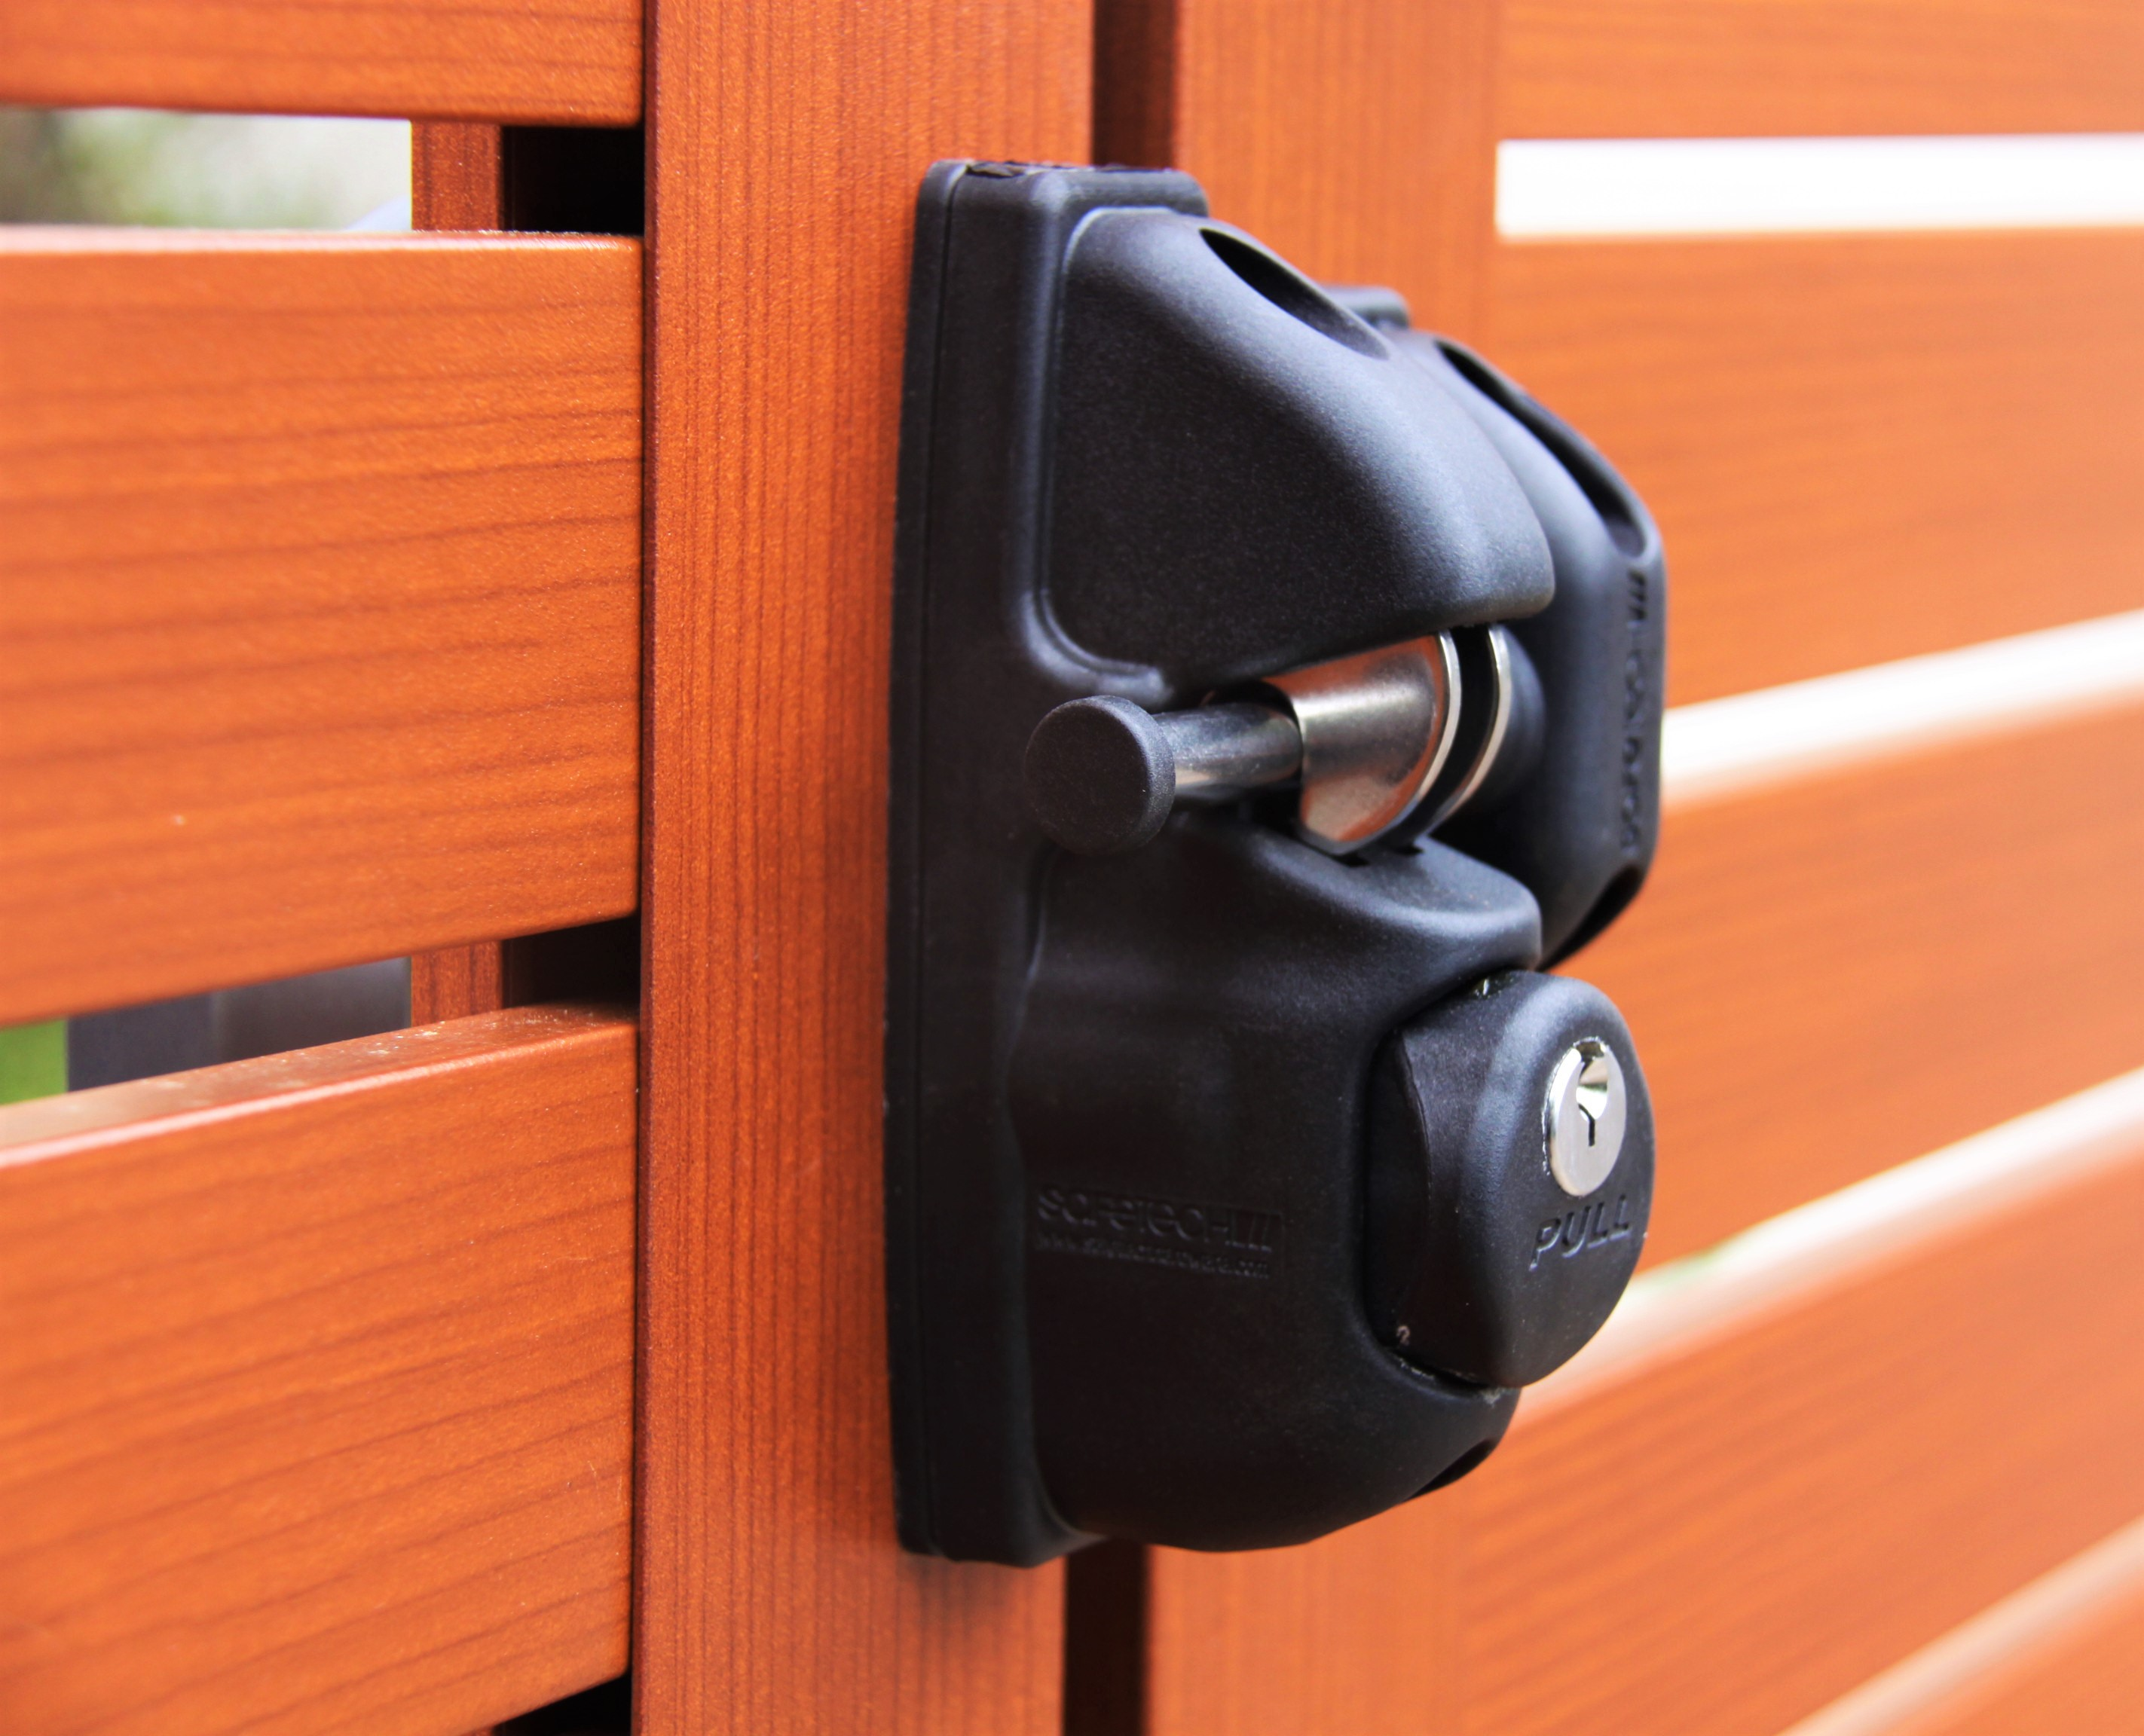 Polymer And Steel Key Locking Gravity Gate Latch. It Is Key Lockable Both  Sides (X2), Easy To Use, Can Be Repinned For WAS Compatibility (POA) And To  Suit ...